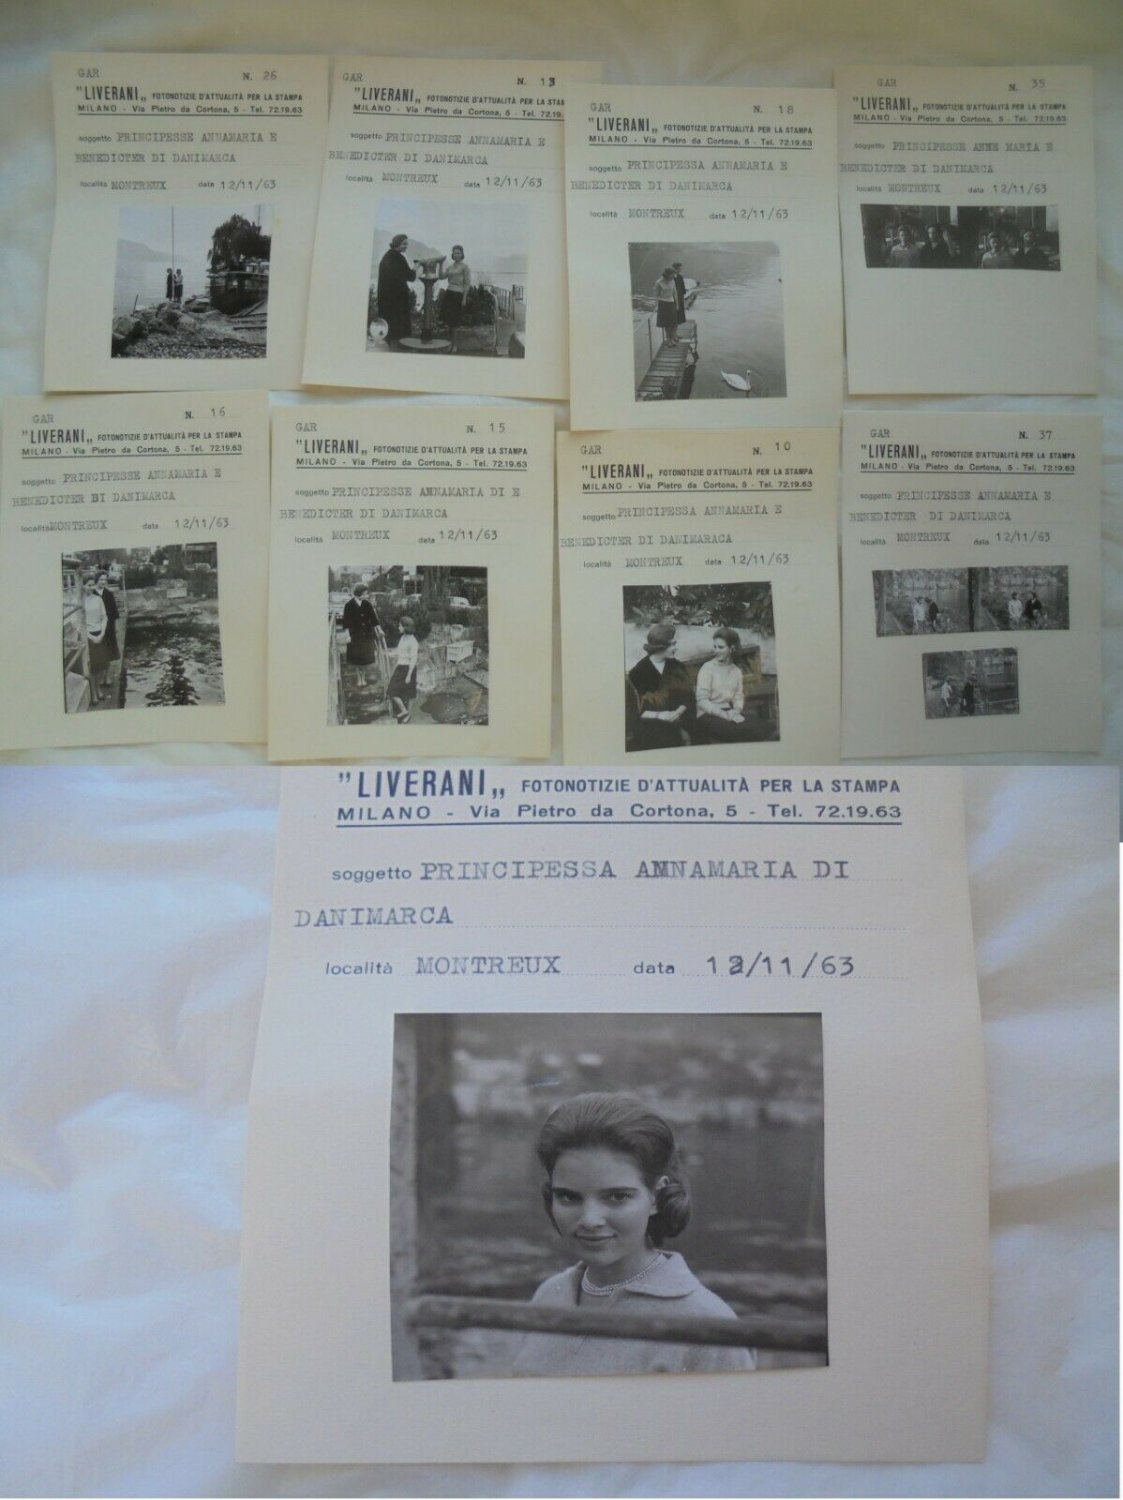 80 Original PICTURES and NEGATIVES photos of Princess Anne Marie and Benedikte of DENMARK 1963